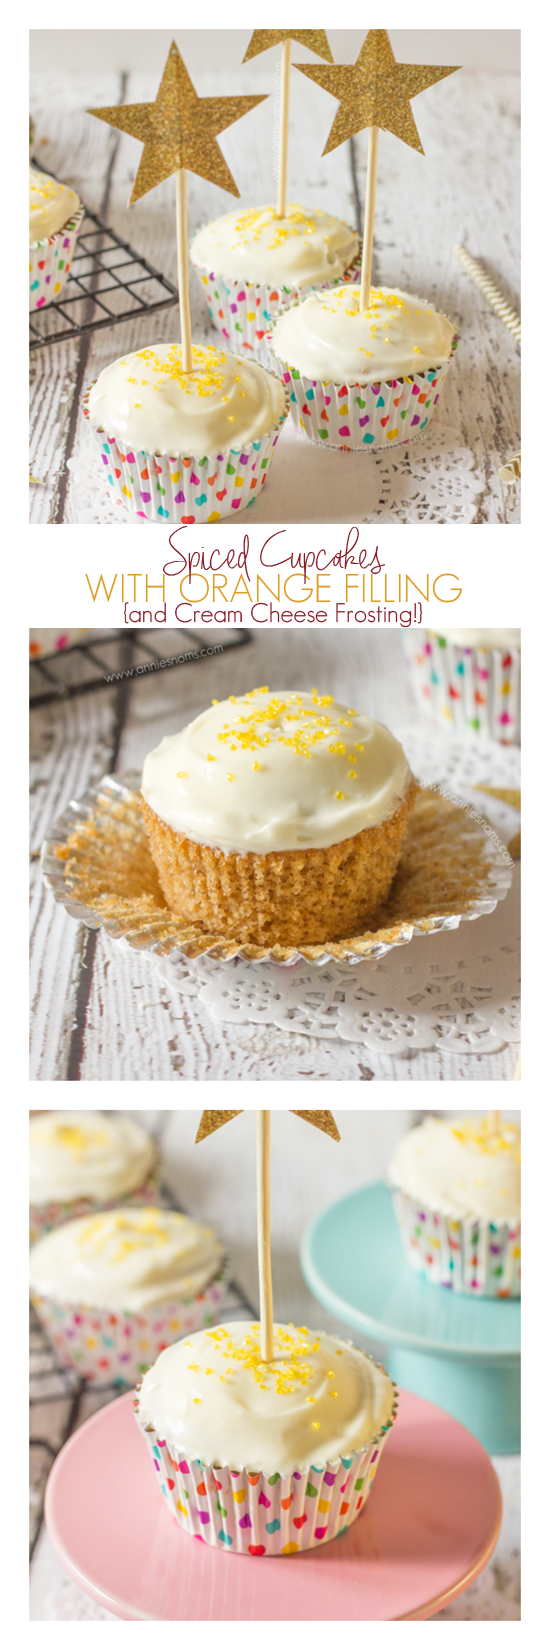 These soft, spiced cupcakes, contrast with their citrusy, sweet orange filling perfectly. And are finished off with cream cheese frosting and sprinkles!